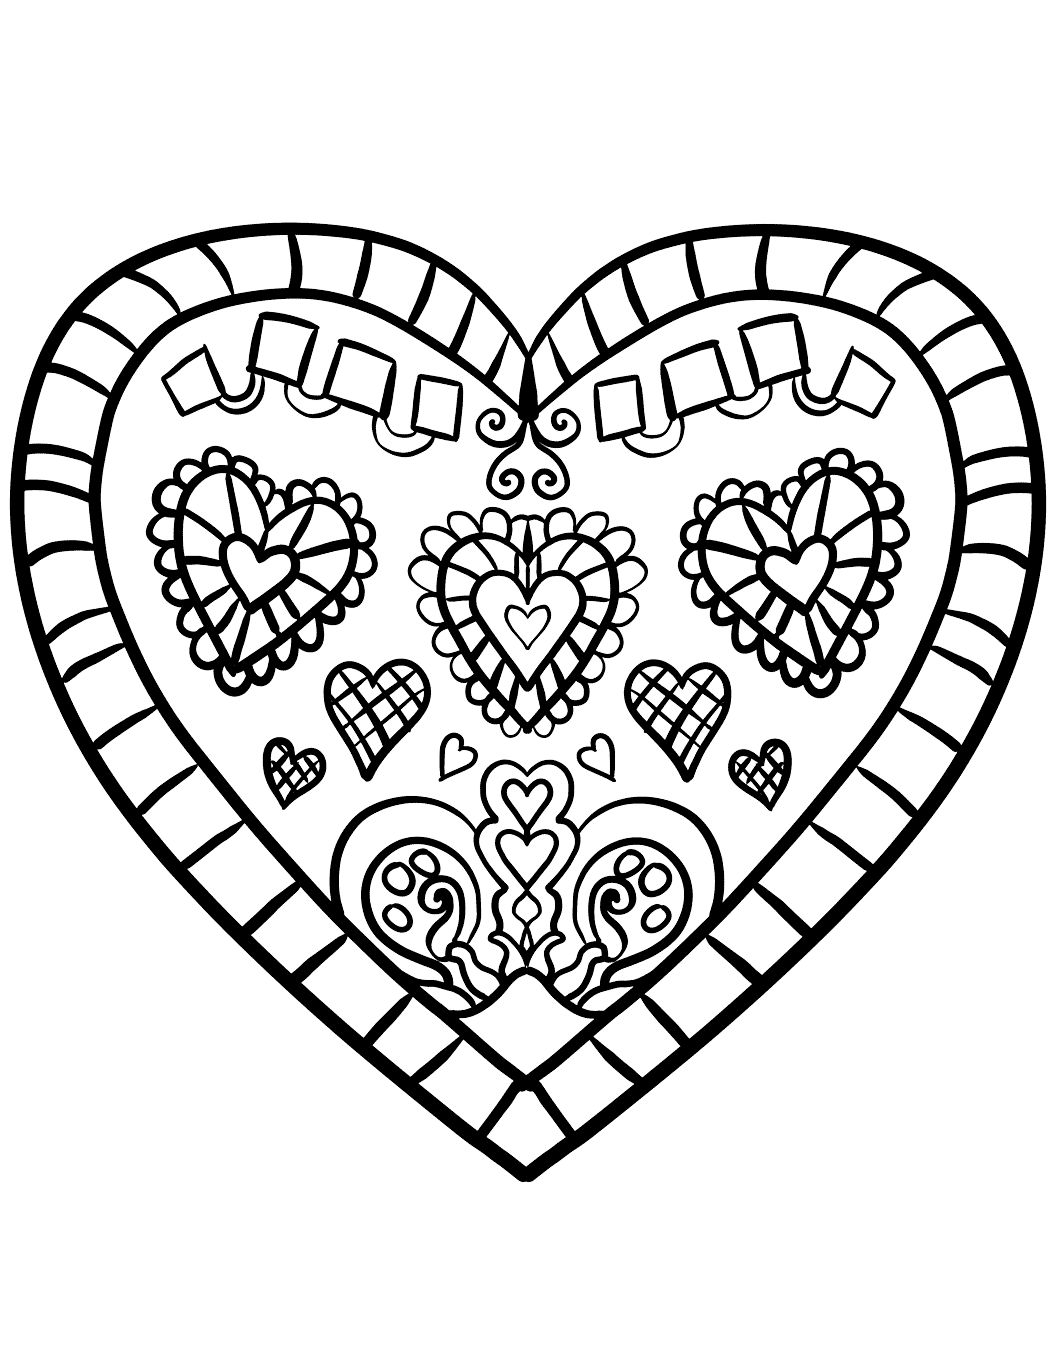 colouring pages of hearts free printable heart coloring pages for kids colouring pages hearts of